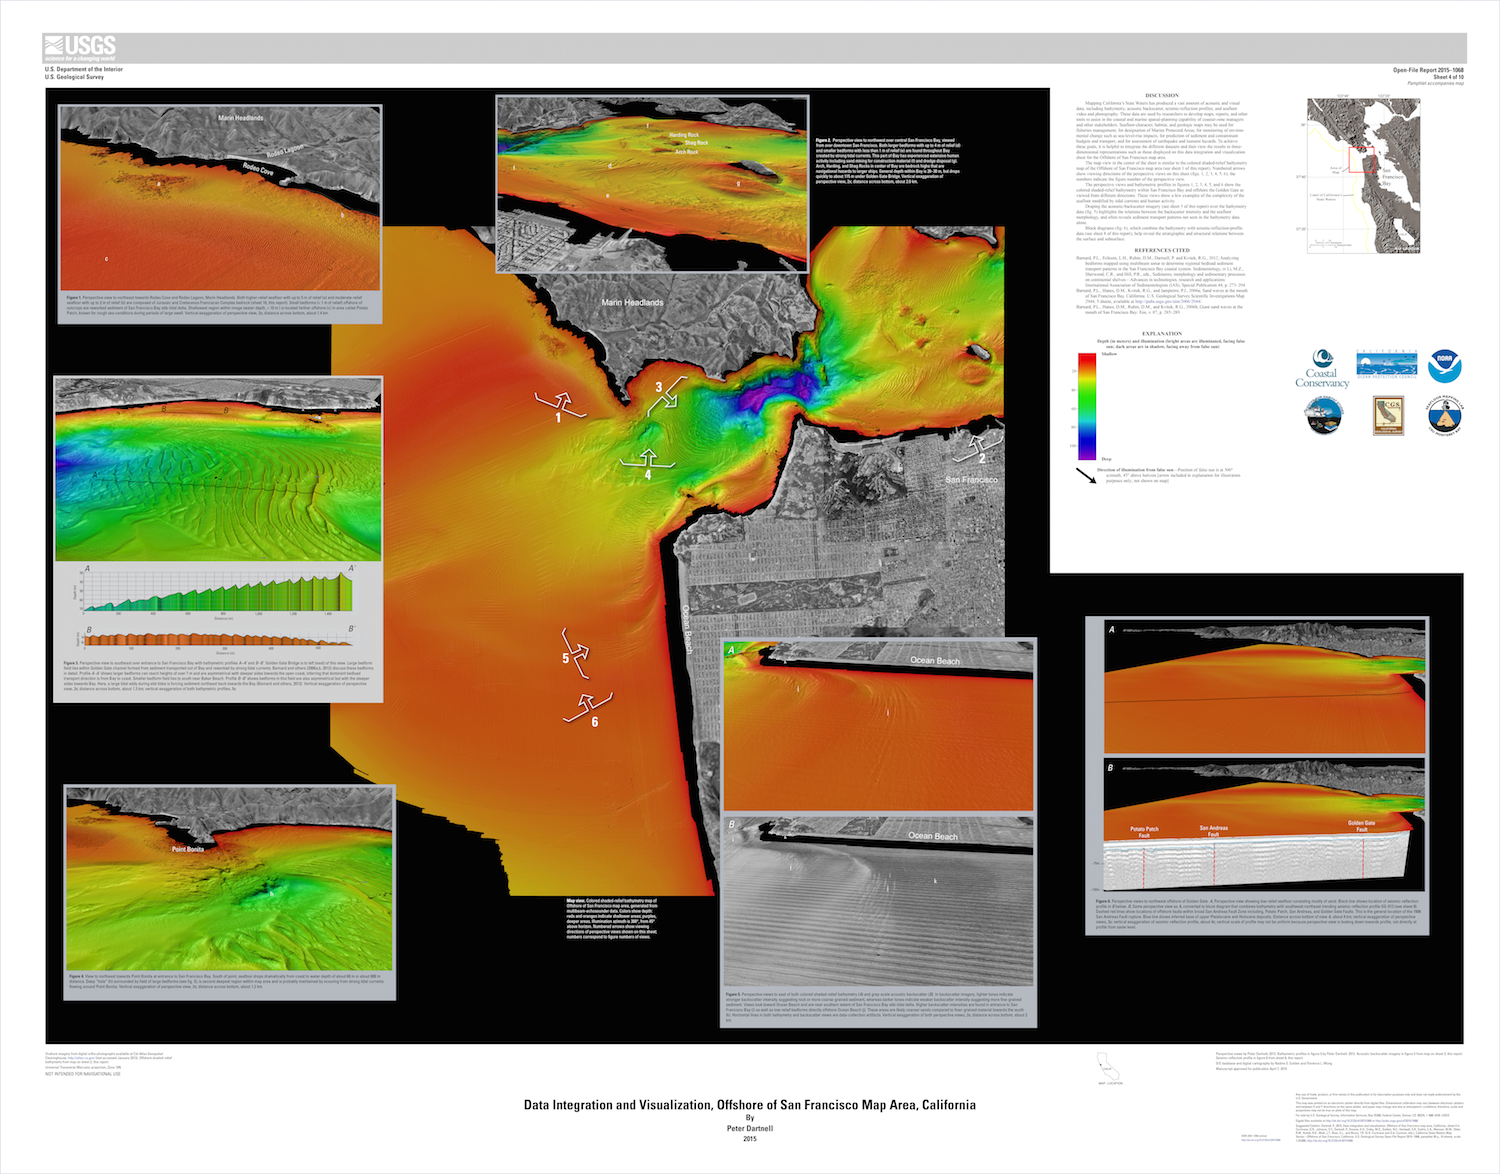 Data Integration and Visualization Offshore San Francisco USGS